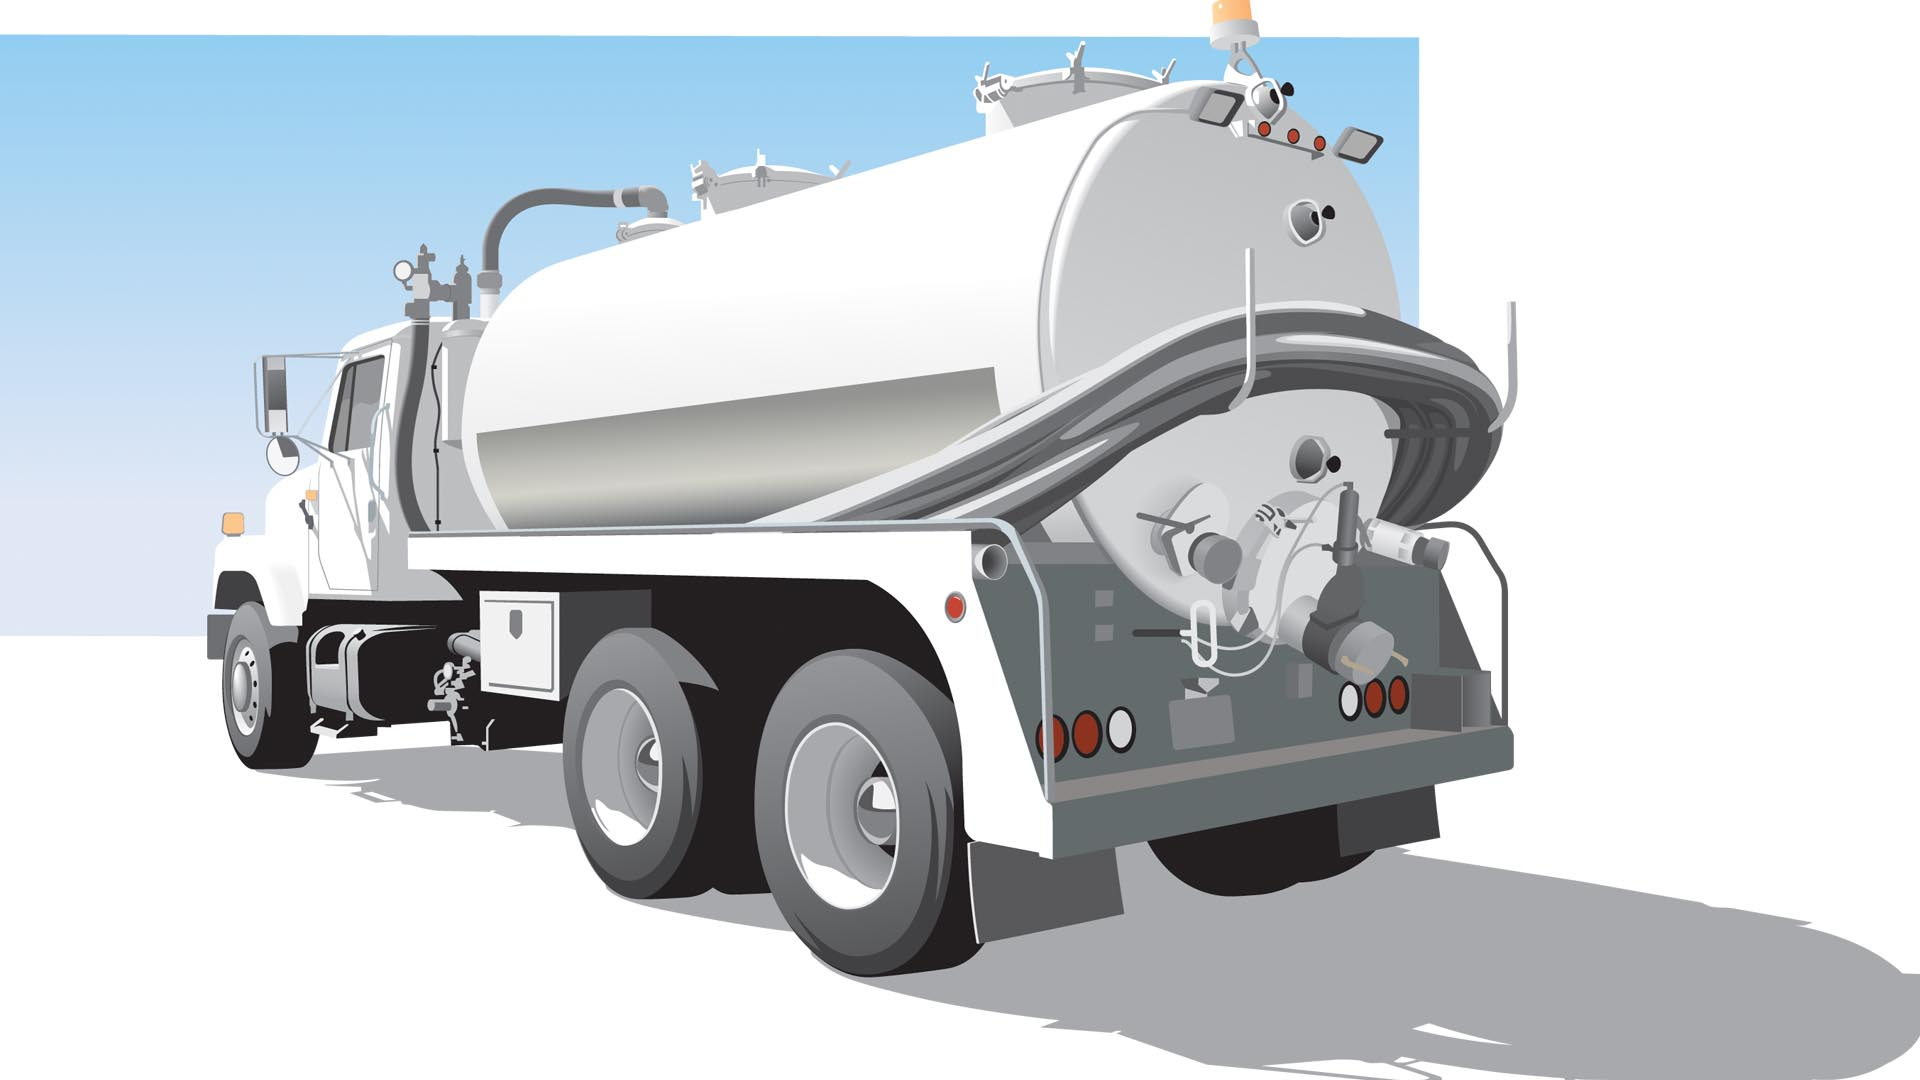 Dorset Septic Pumping, Septic Services and Septic Cleaning